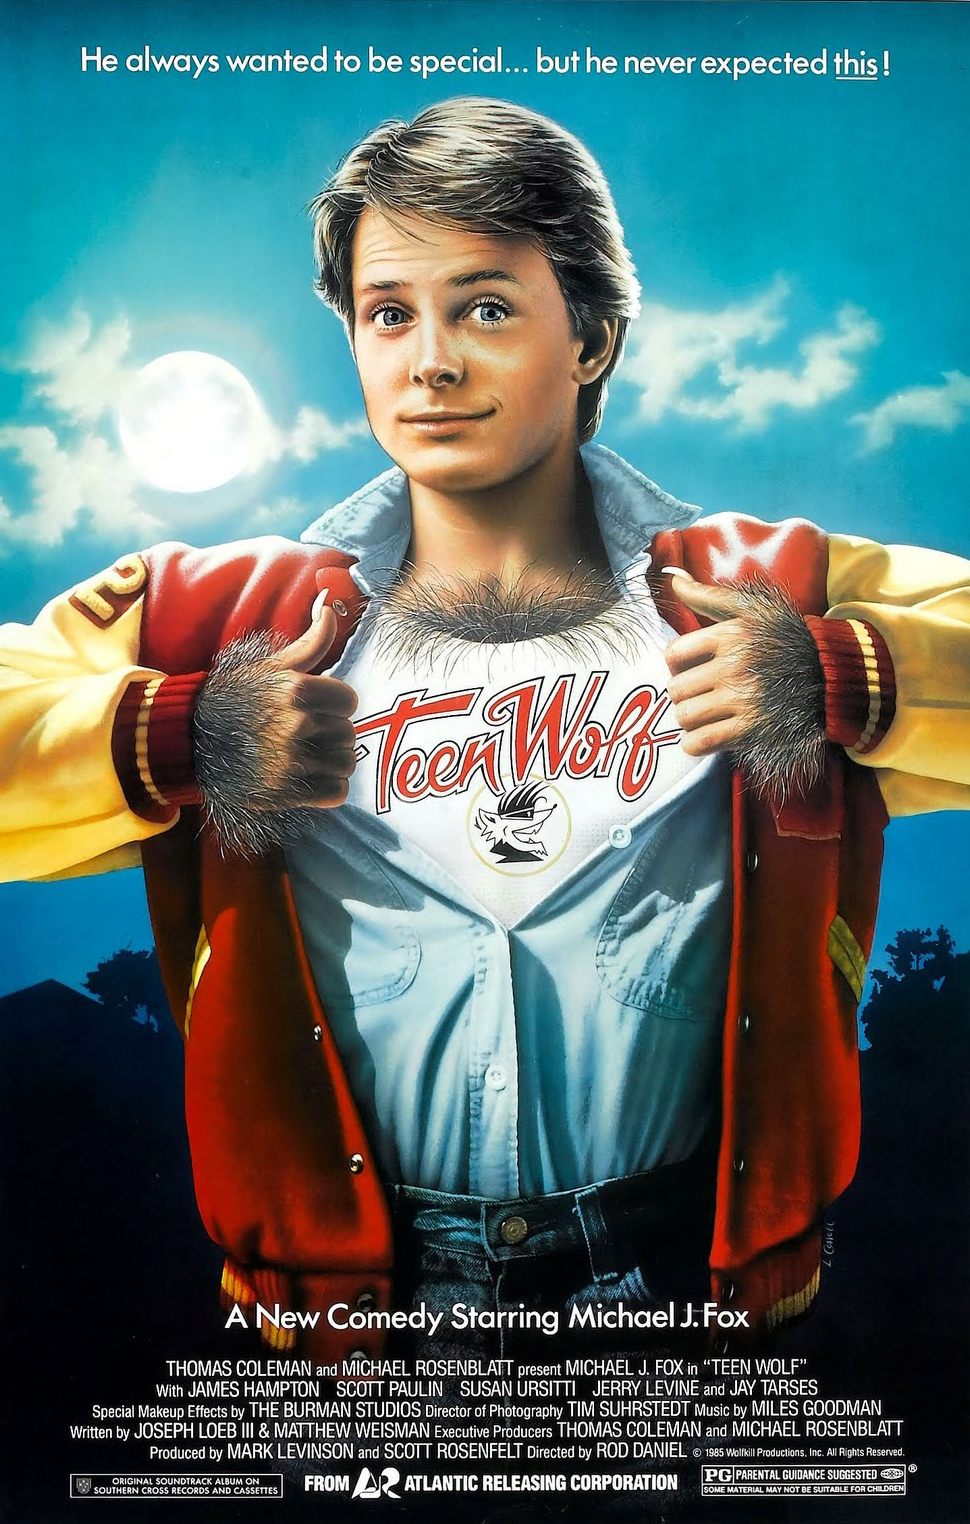 Teen Wolf (1985) | That Was A Bit Mental